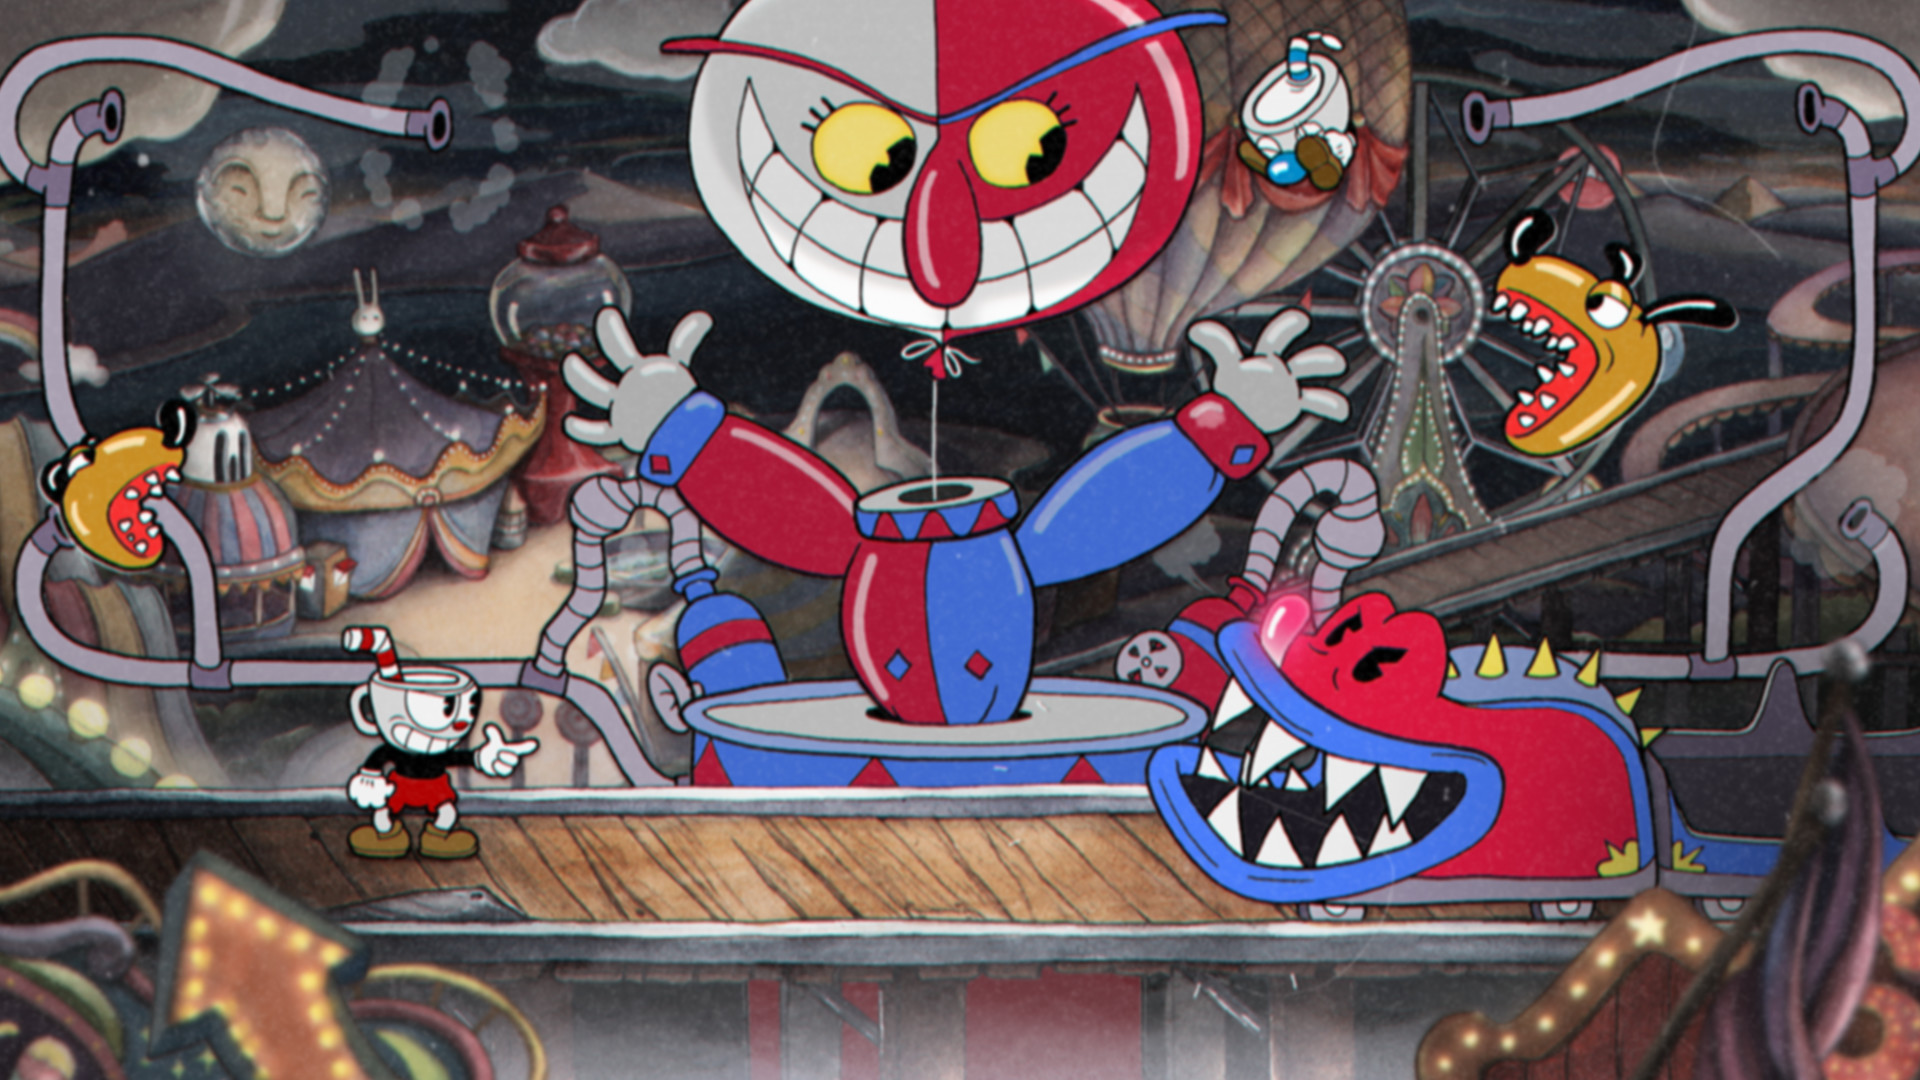 ✅ Cuphead 🥂 XBOX ONE SERIES X|S / PC Win 10 Key 🔑